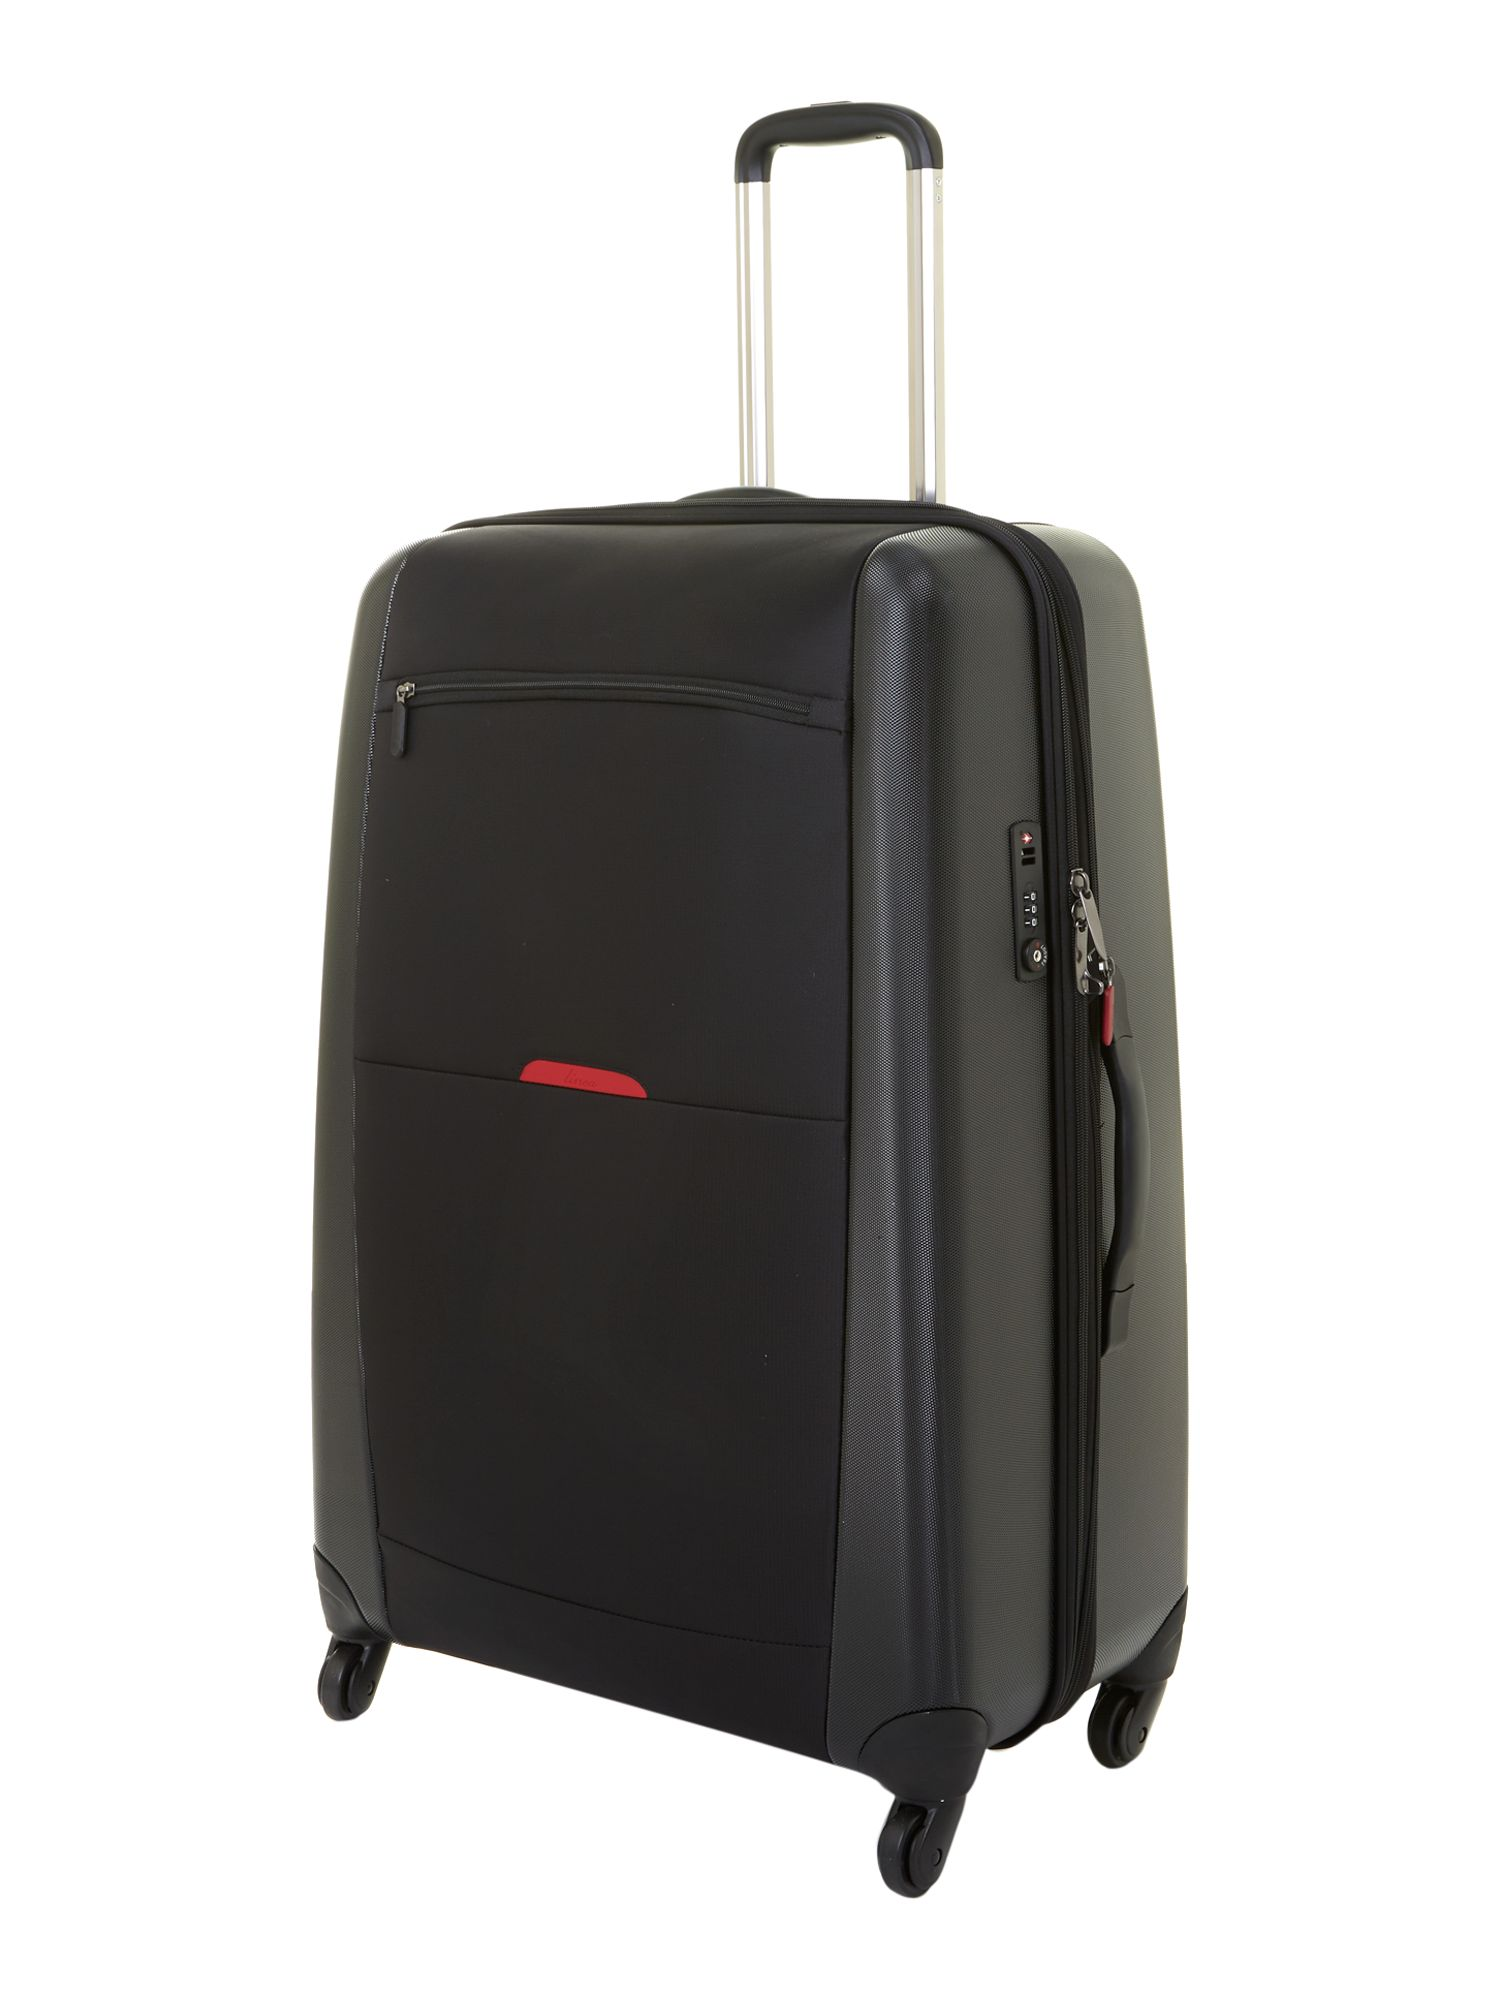 New Hylite 4-Wheel Large Suitcase